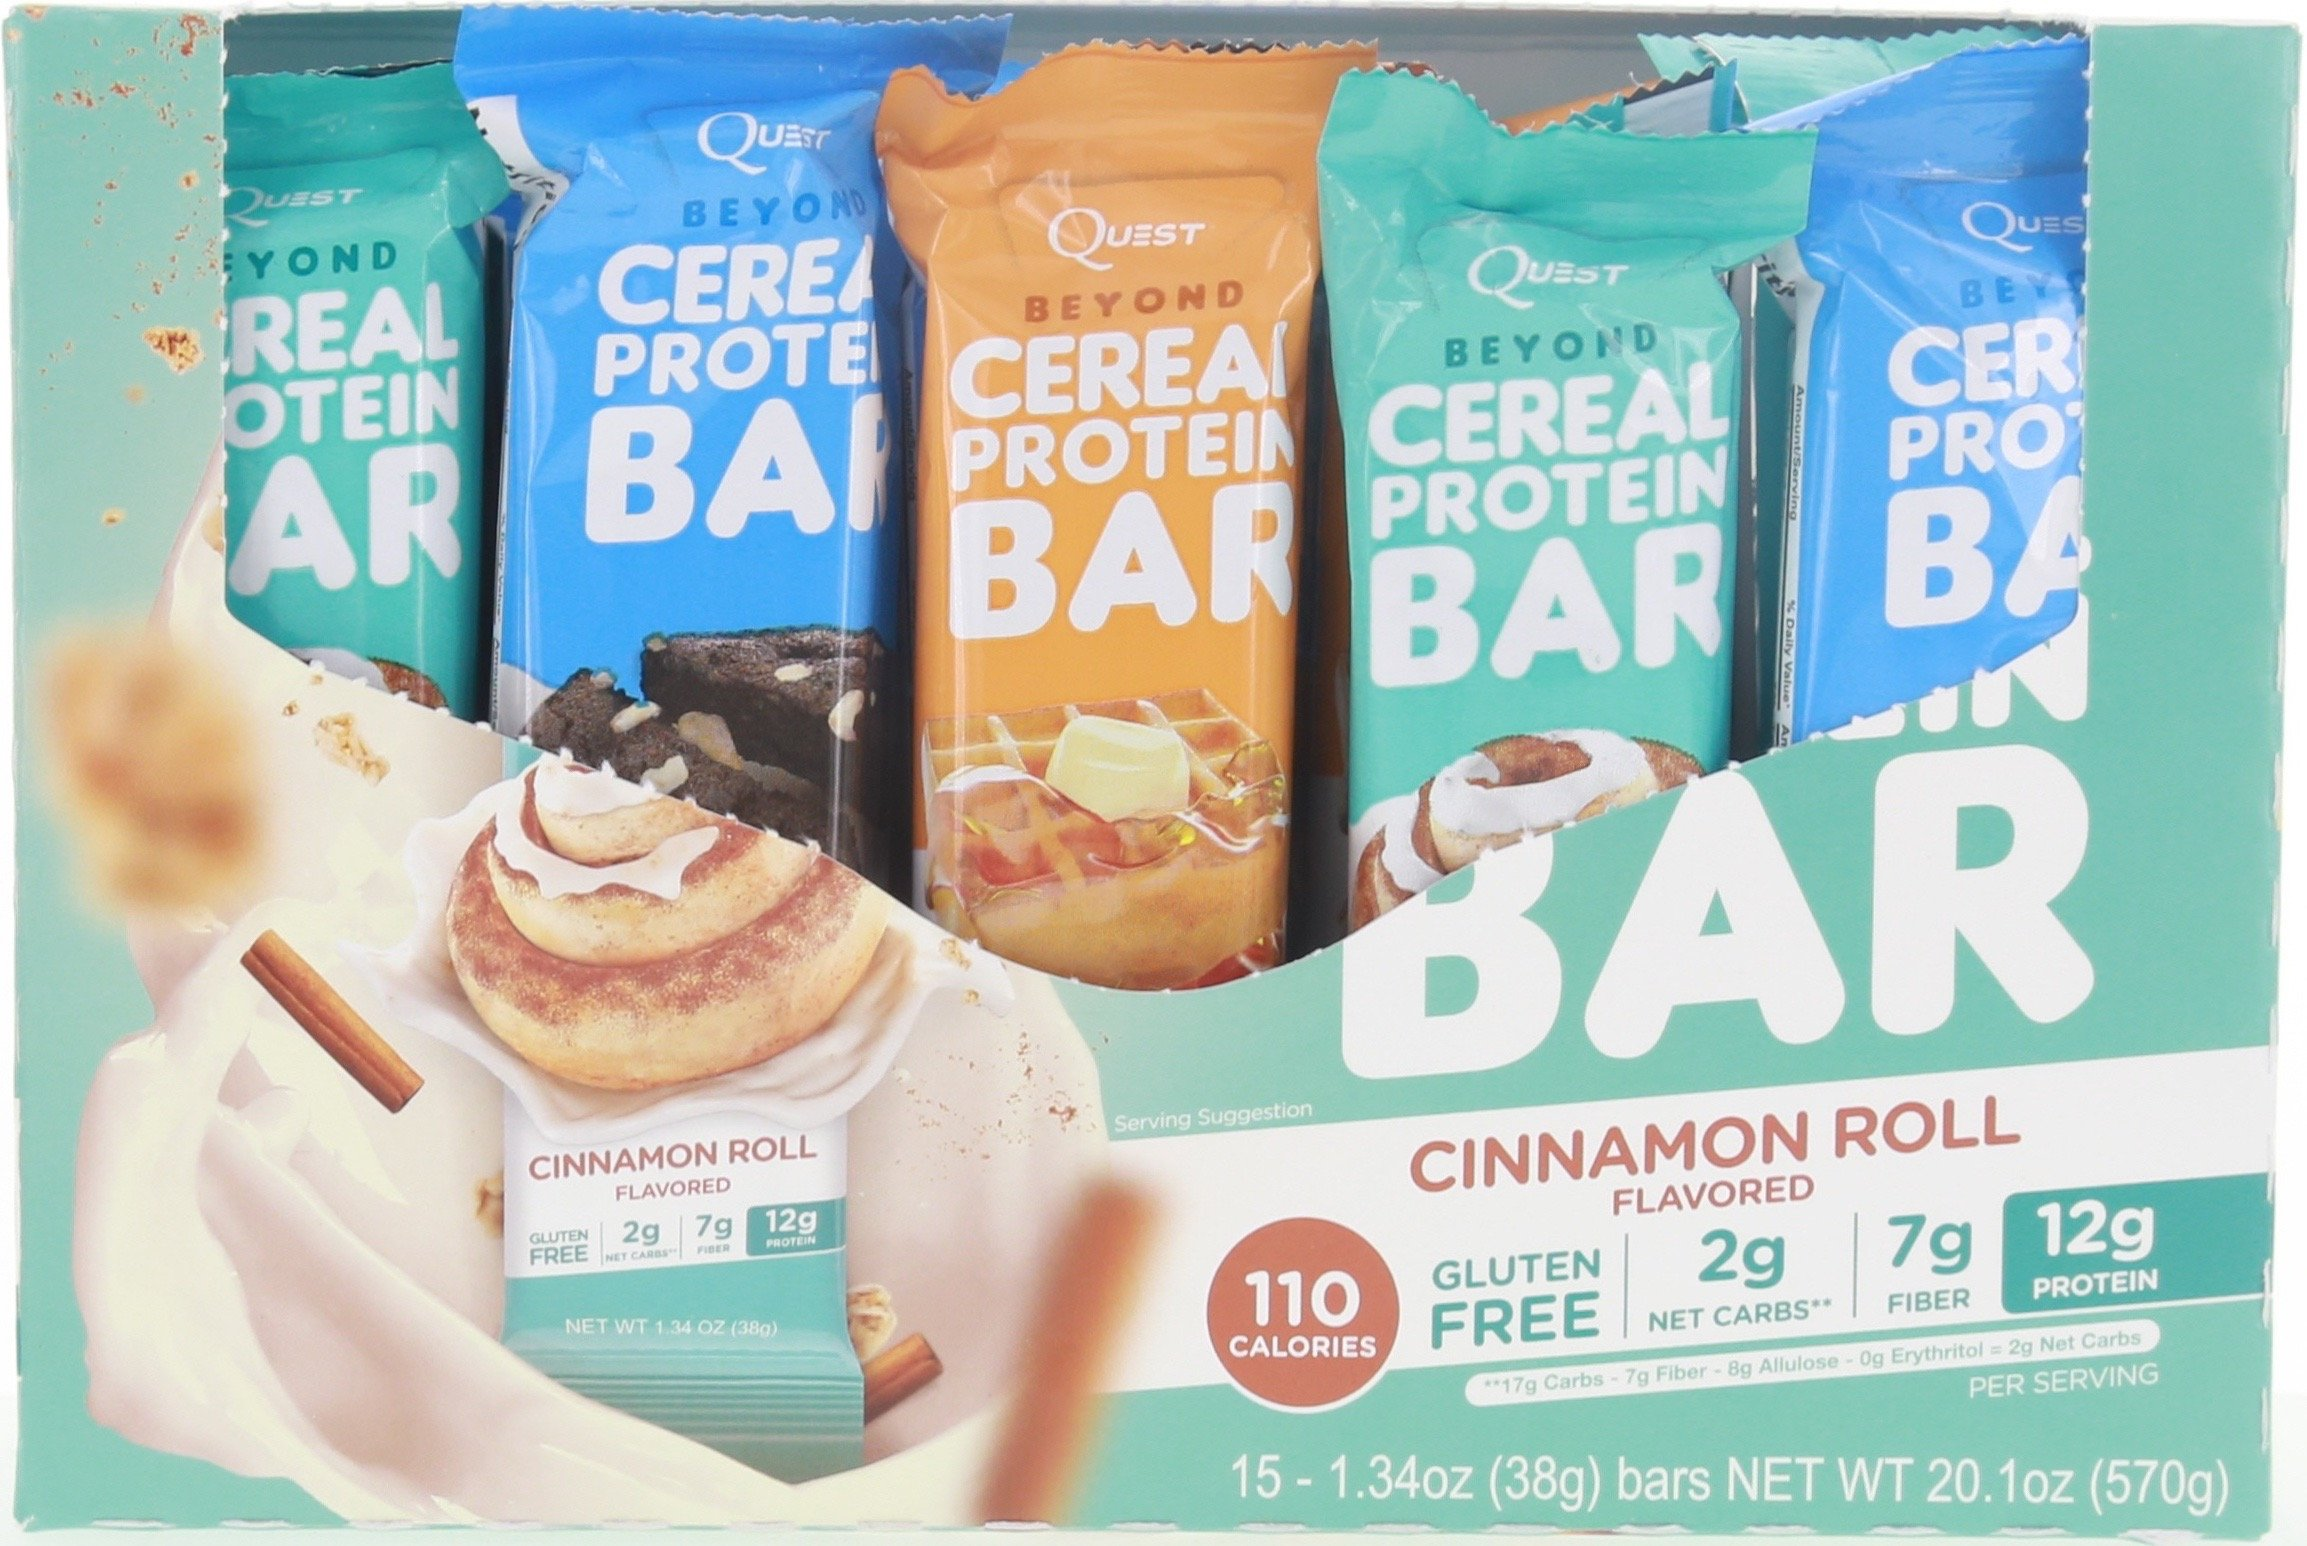 Buy Quest Beyond Cereal Bar Now!